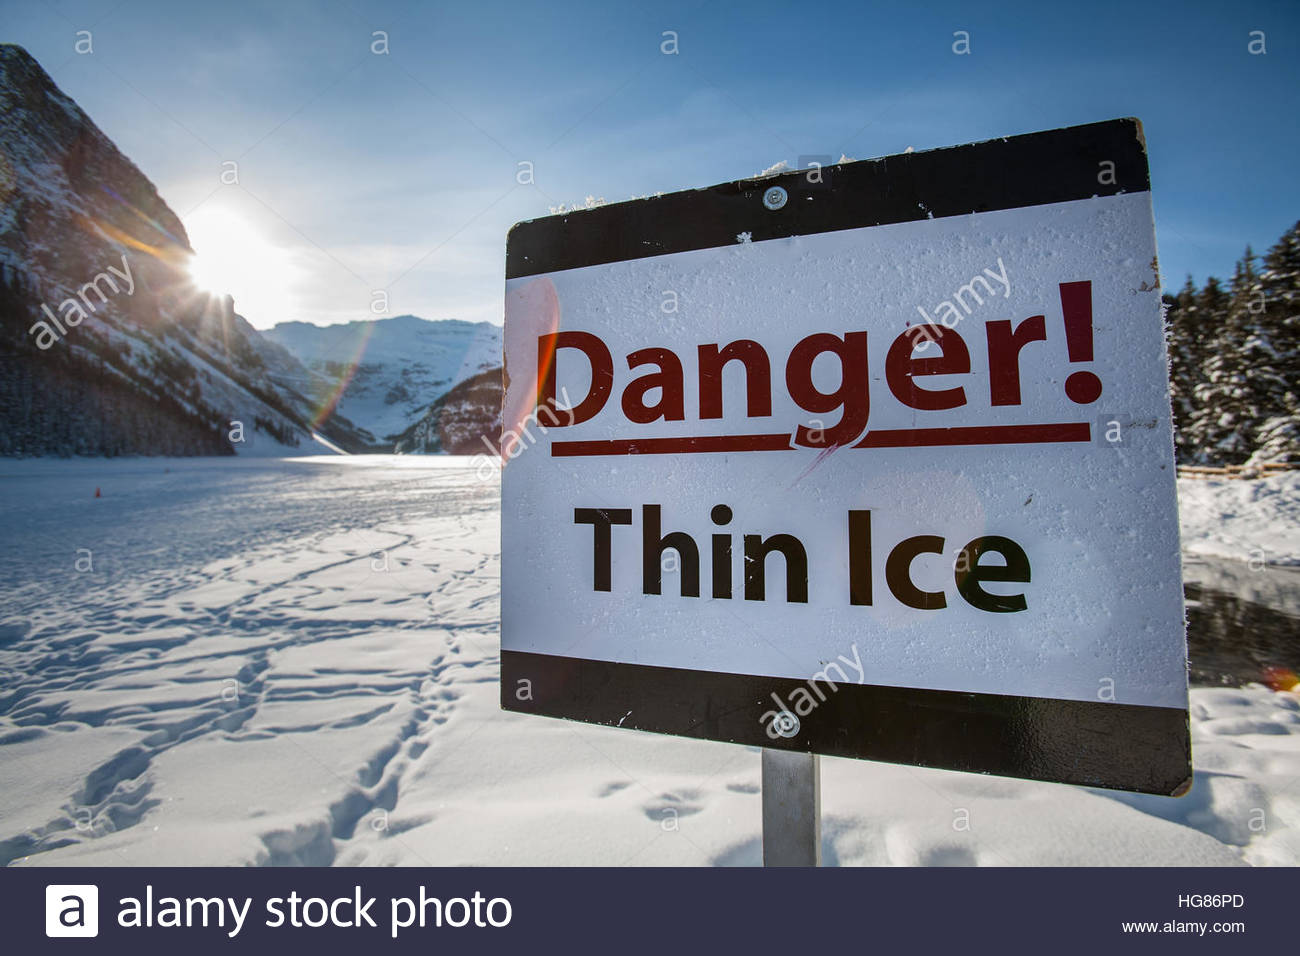 A 'Danger! Thin Ice' sign stands in front of frozen over Lake Louise during a sunny winter day - Stock Image